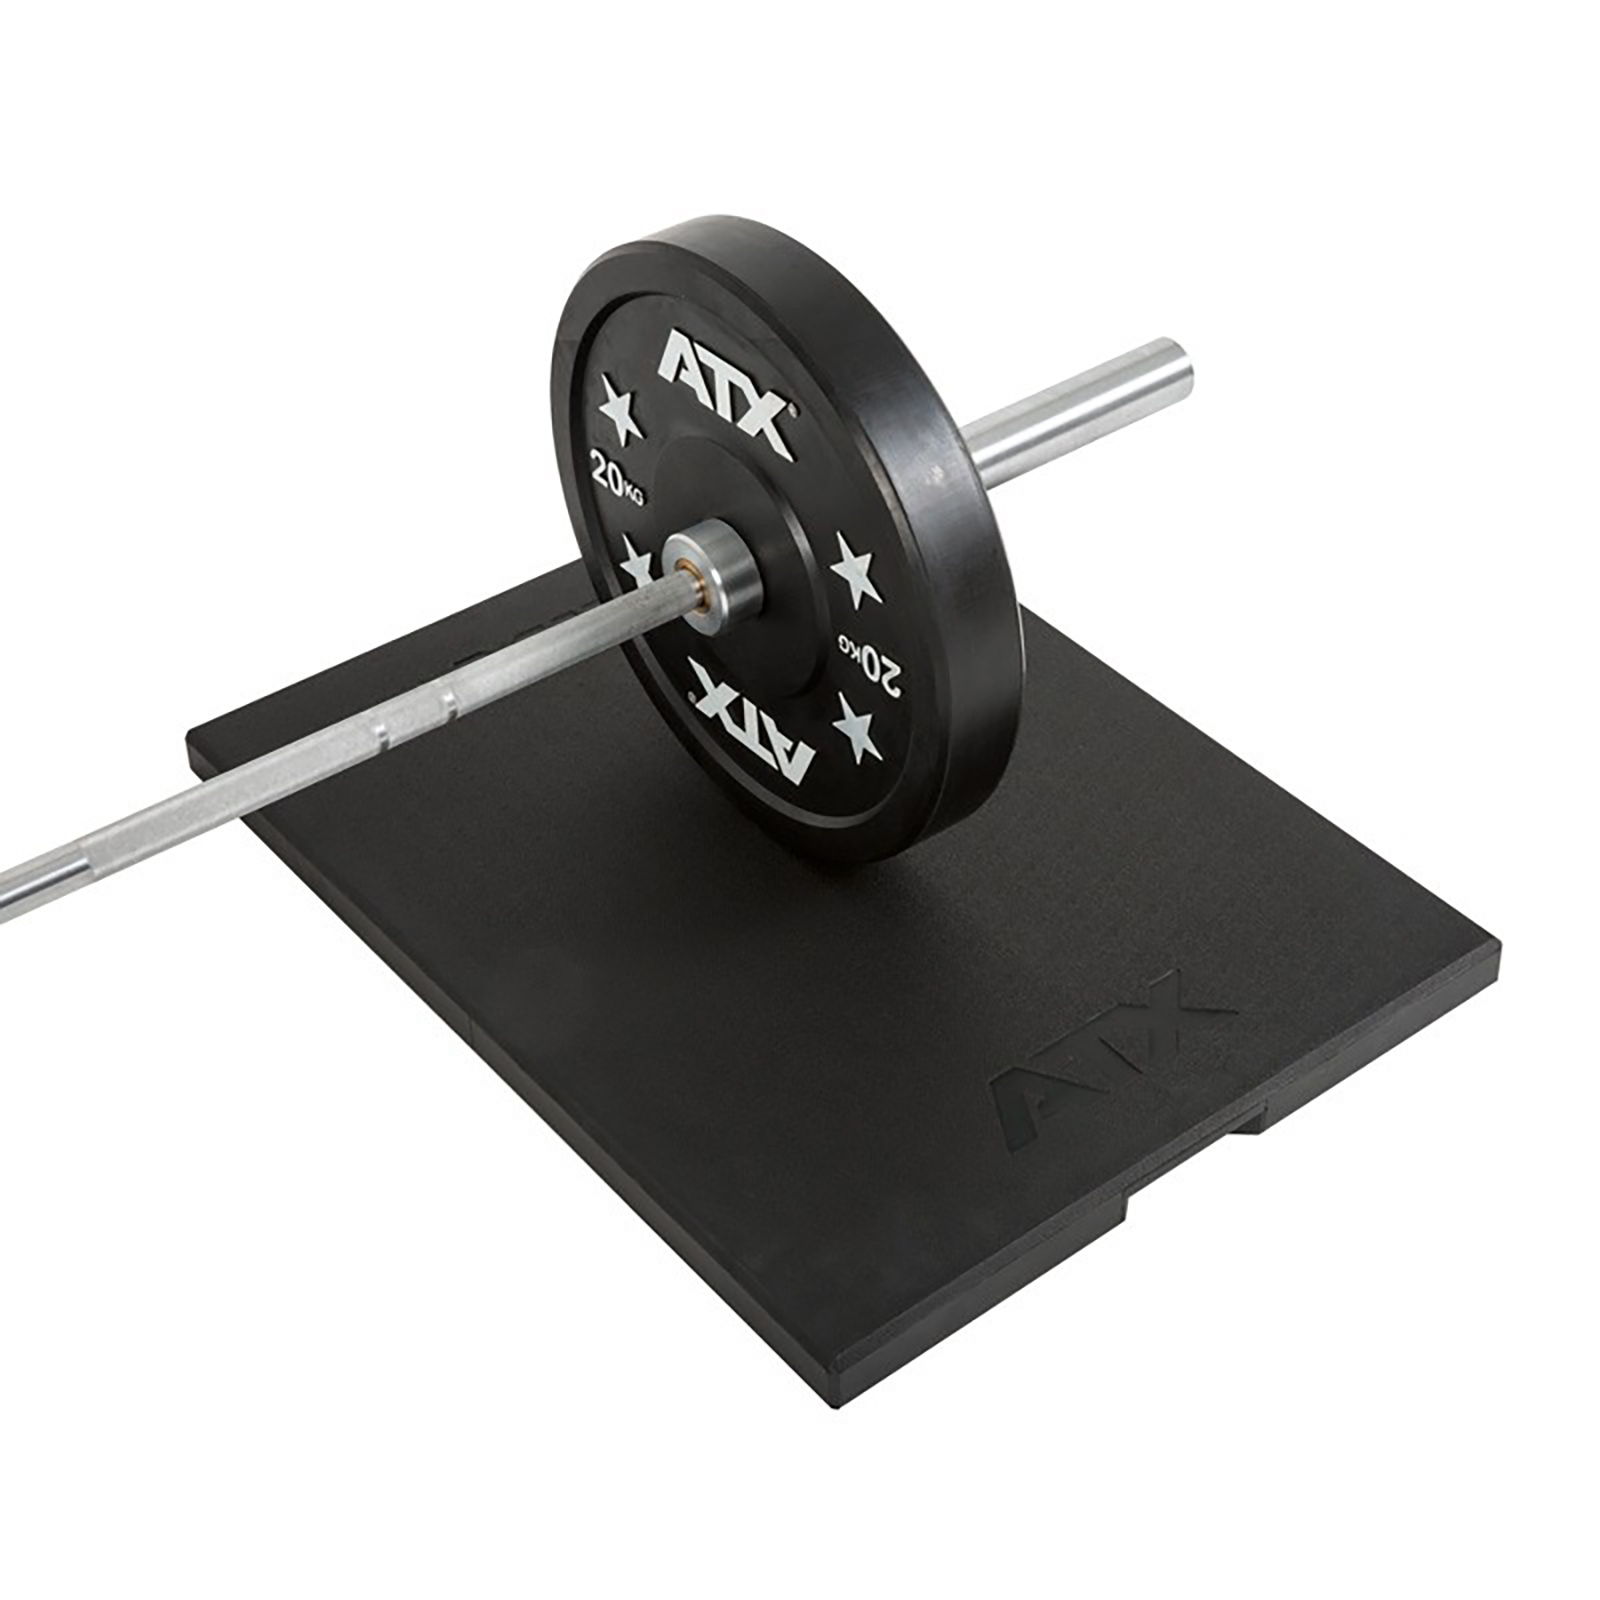 weight drop plate